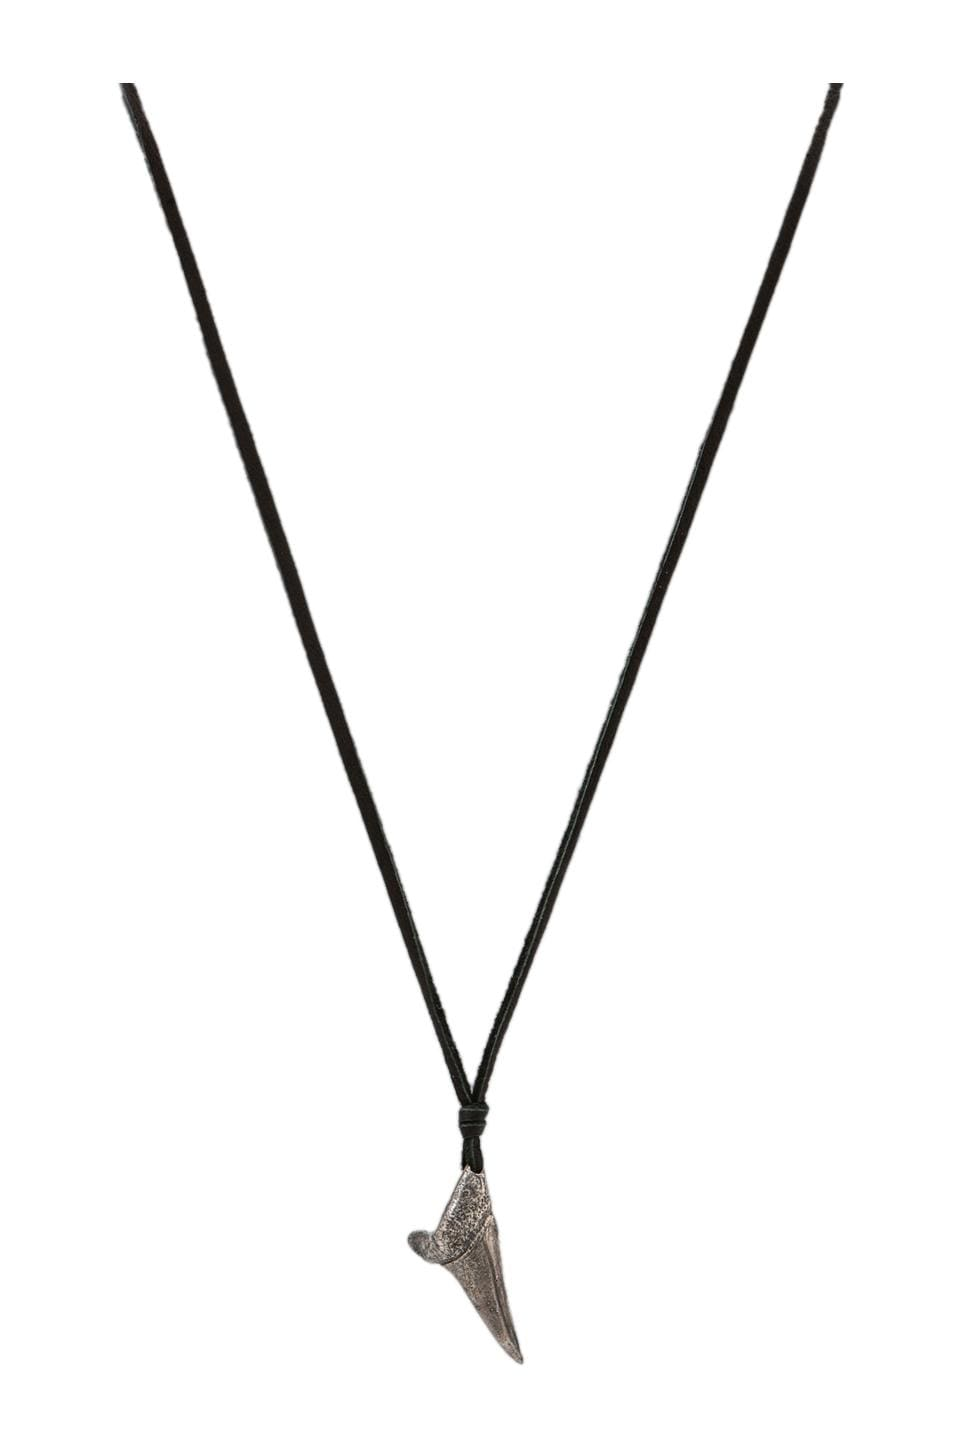 M.Cohen Shark Tooth Necklace in Black